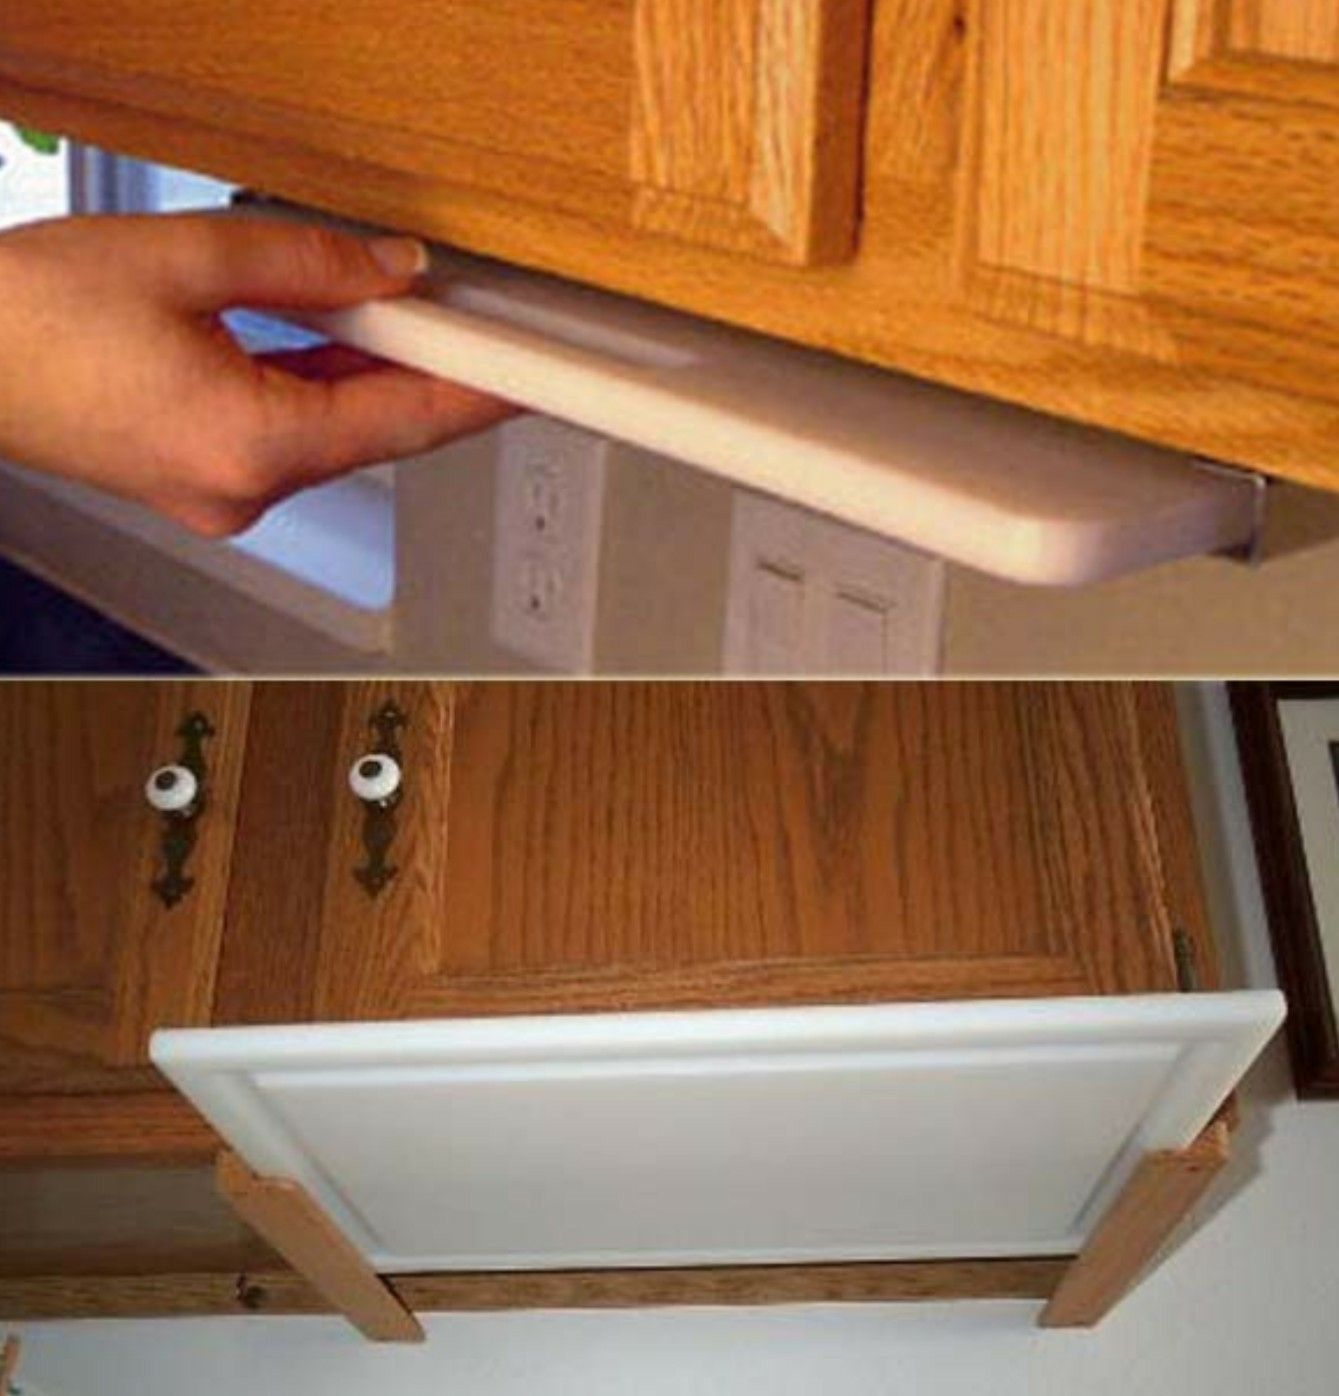 Cutting Kitchen Cabinets: Under The Cabinet Cutting Board